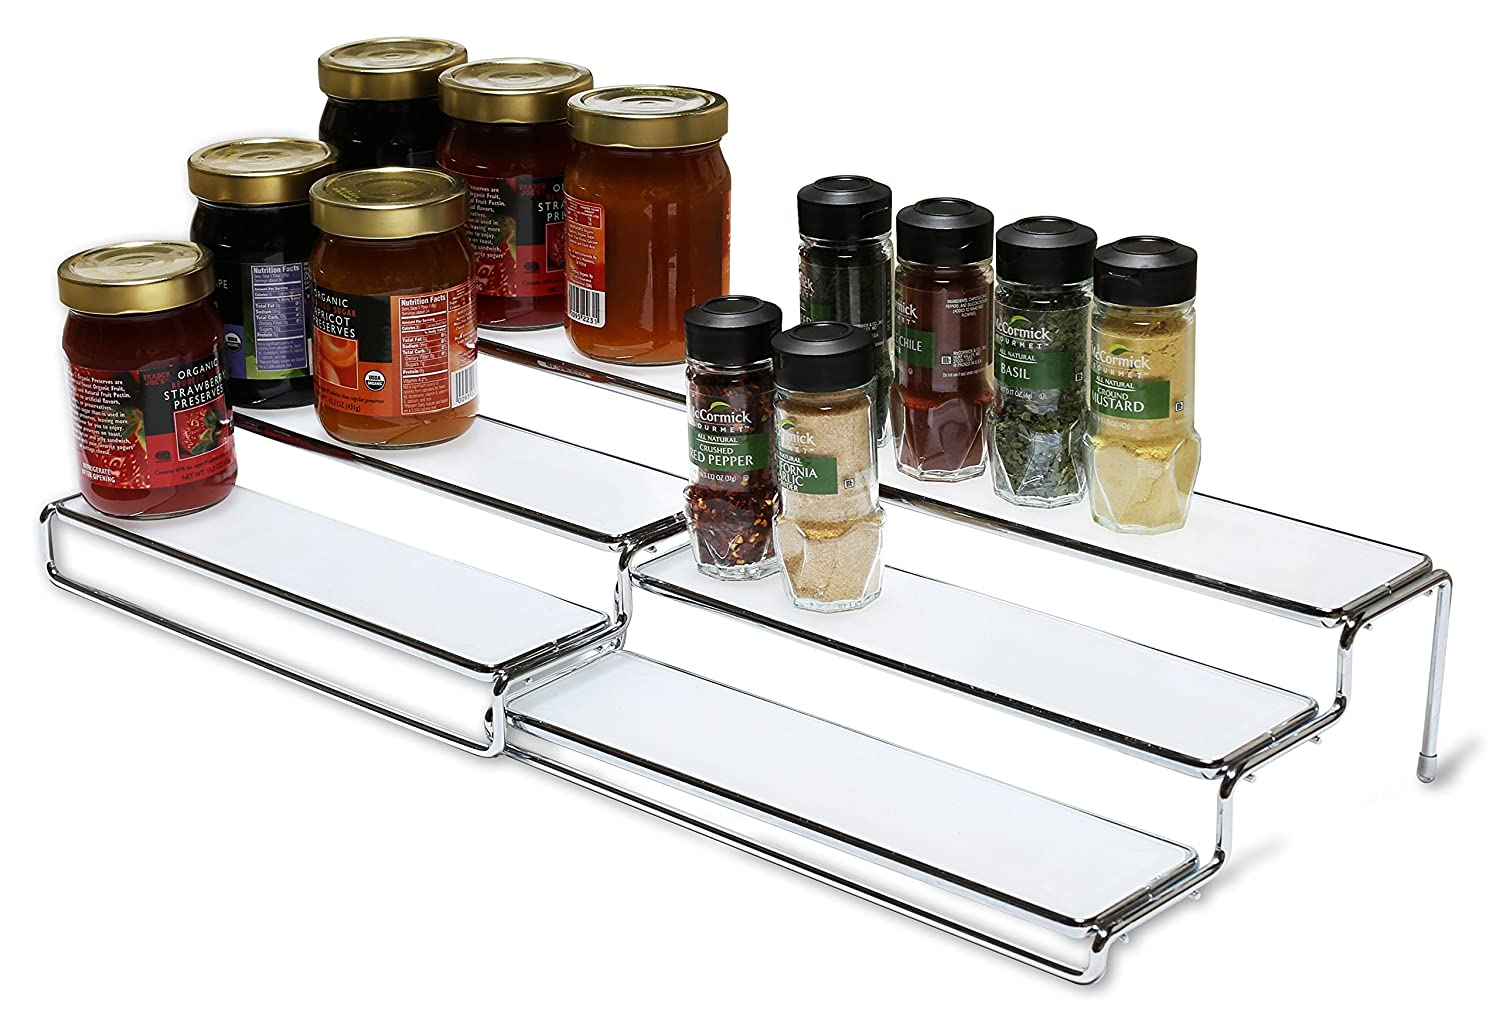 3 Tier Expandable Cabinet Spice Rack Step Shelf Organizer